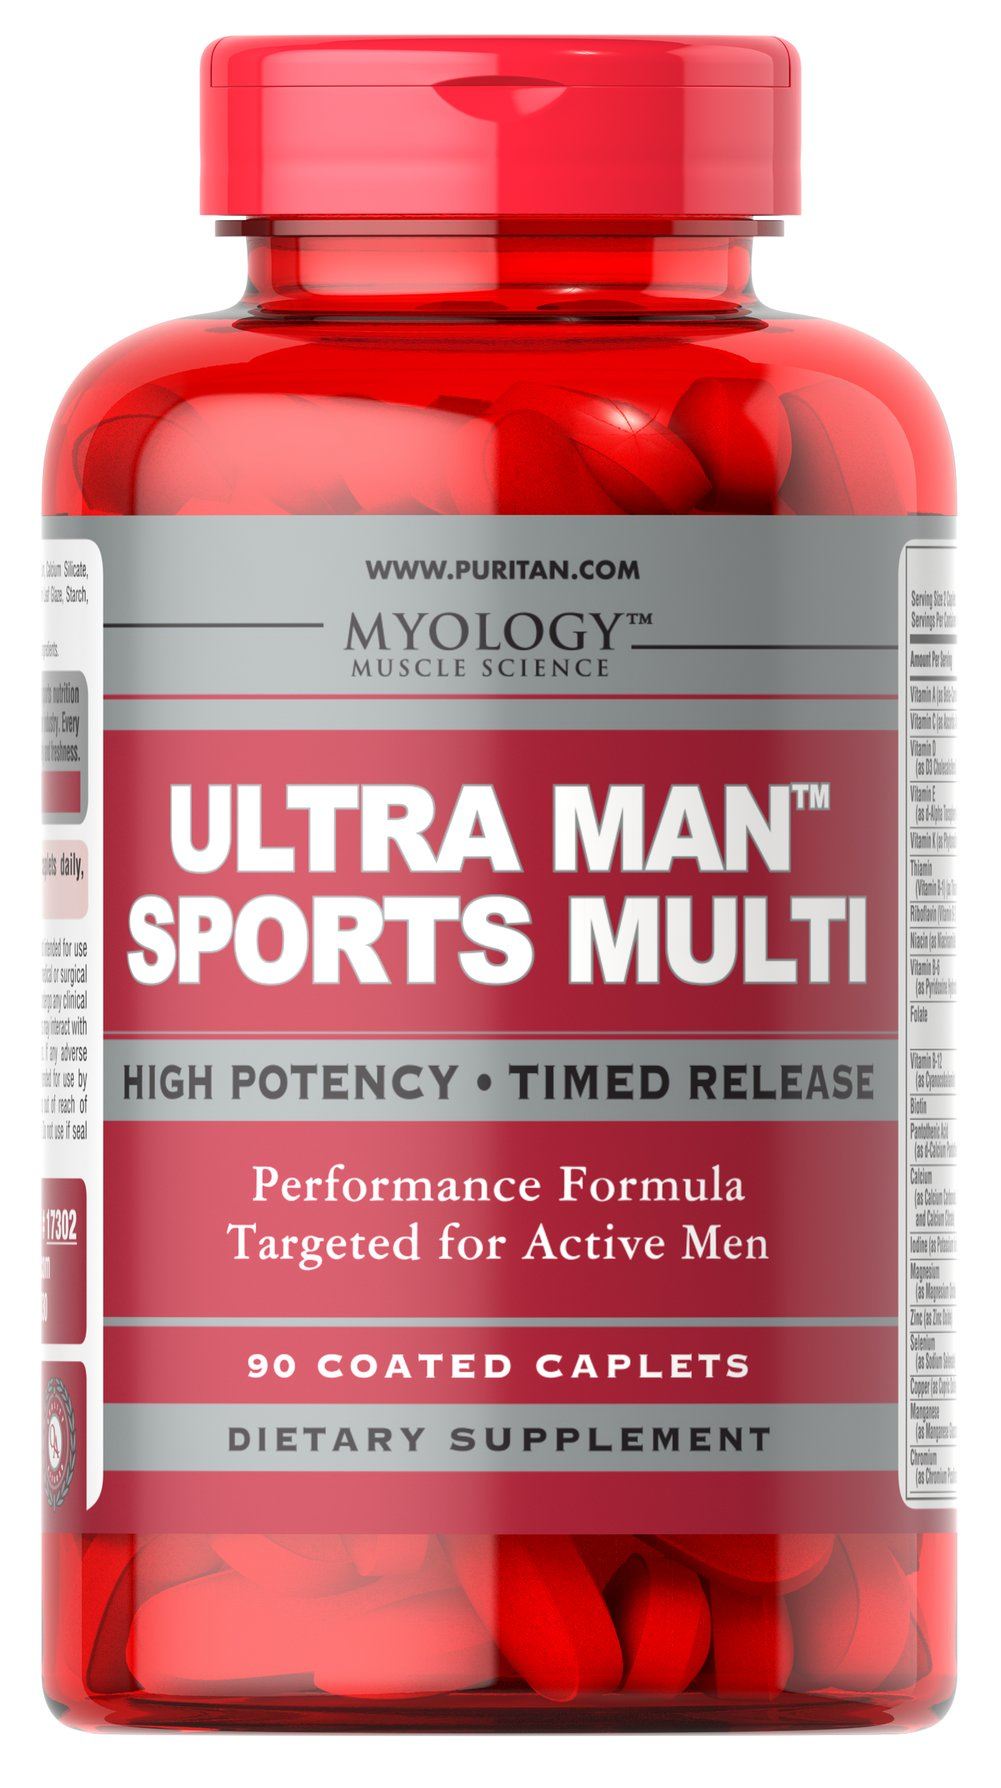 "Ultra Man™ Sports Multivitamins <ul><li><span style=""font-family:'Arial','sans-serif';color:black;"">Comprehensive male multivitamin performance formula.</span></li><li><span style=""font-family:'Arial','sans-serif';color:black;"">Timed release caplets provide extended delivery.</span></li><li><span style=""font-family:'Arial','sans-serif';color:black;"">Supp"